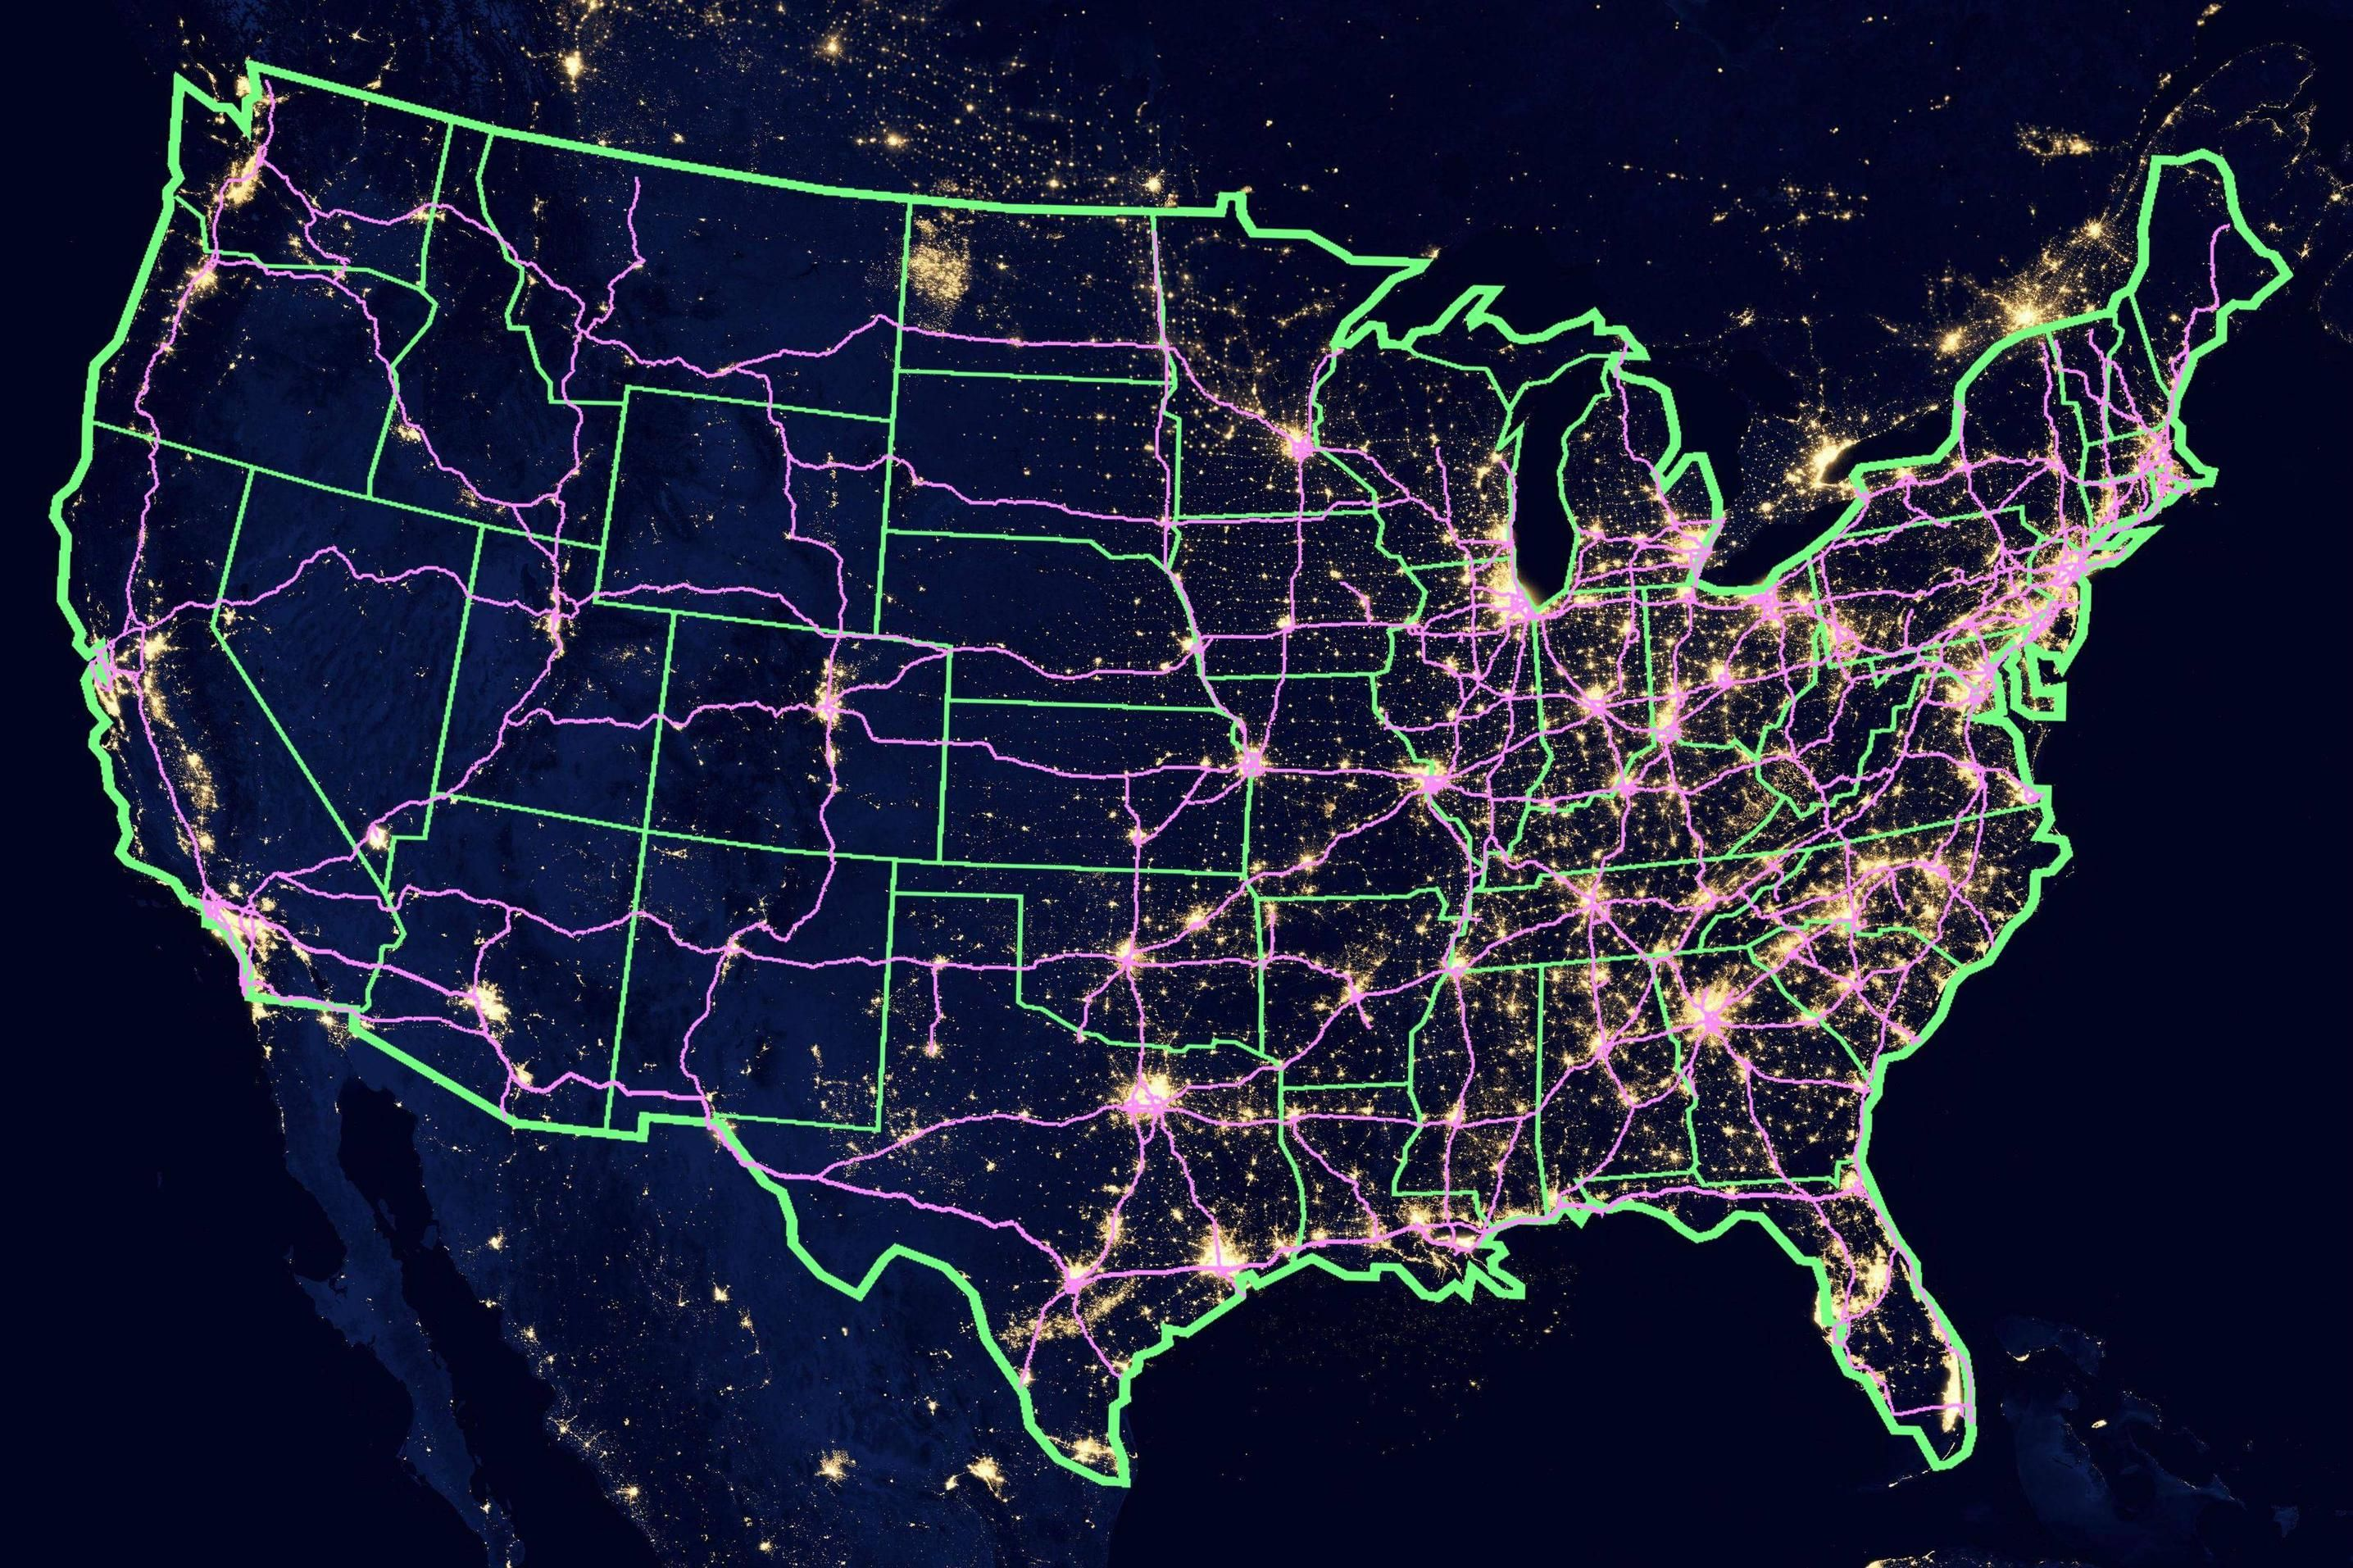 Here S A Us Map Showing The Constellation Of City Lights And Highways